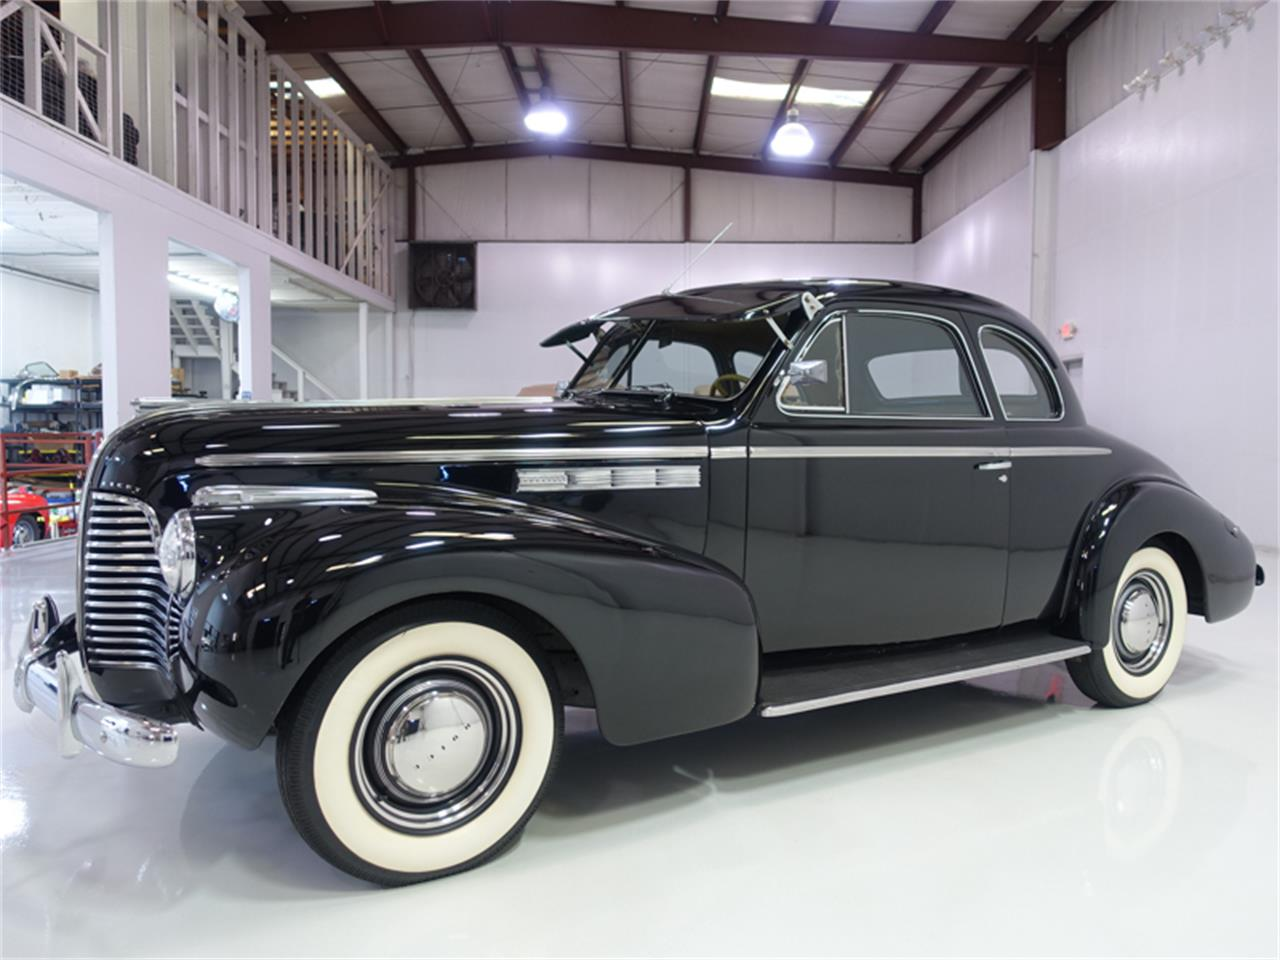 Large Picture of Classic 1940 Buick Special - $29,900.00 - P6N9